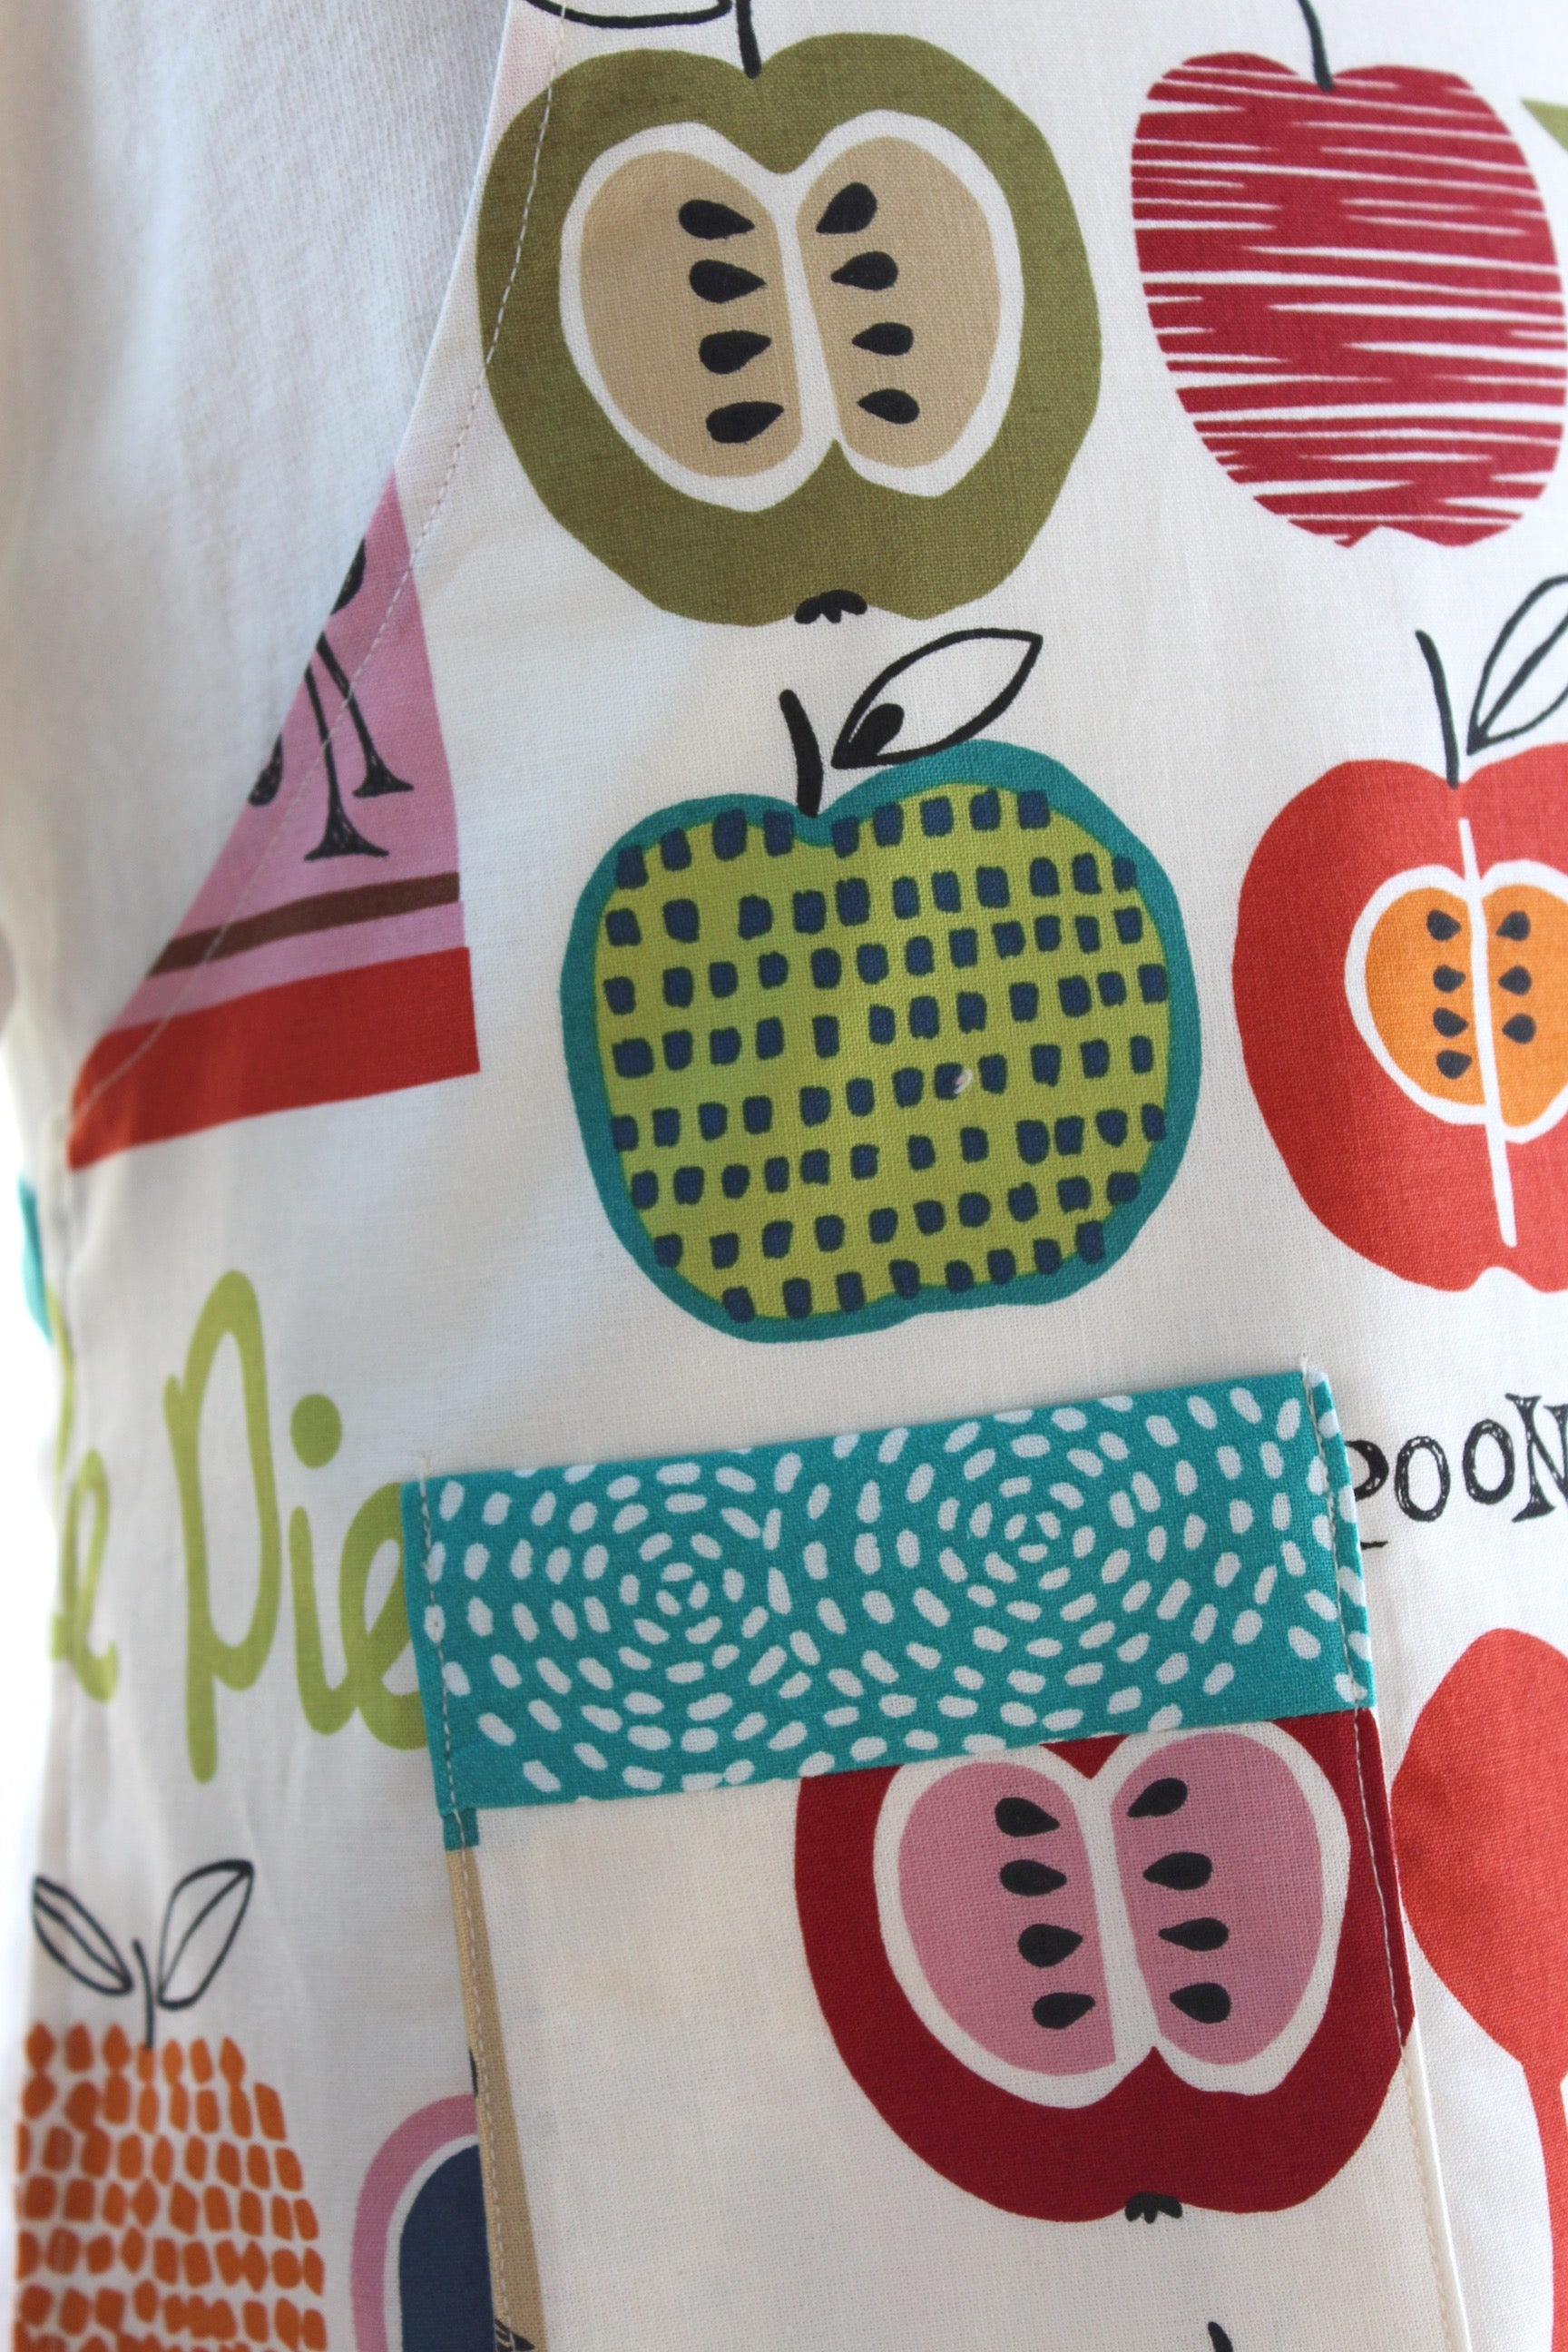 Apple Pie Kid's Apron